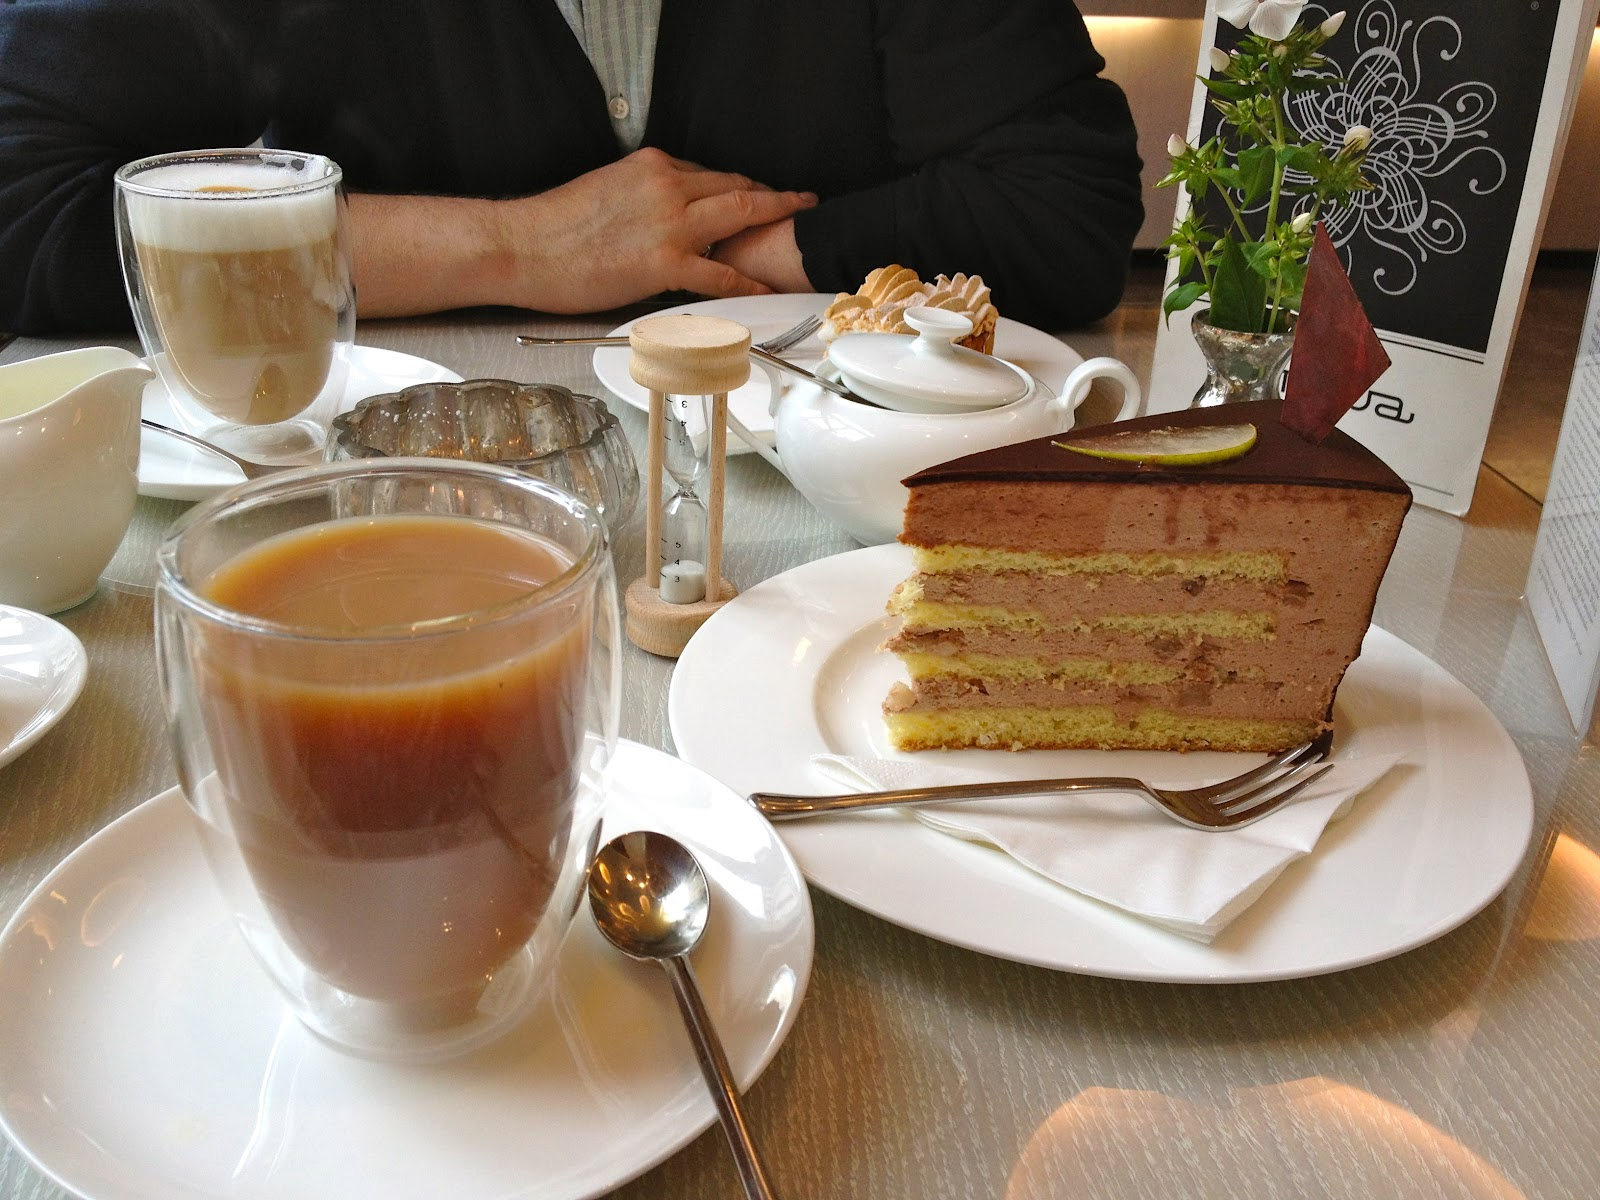 Kaffee Und Kuchen Berlin Afternoon Tea Total Review Princess Cheesecake Mitte